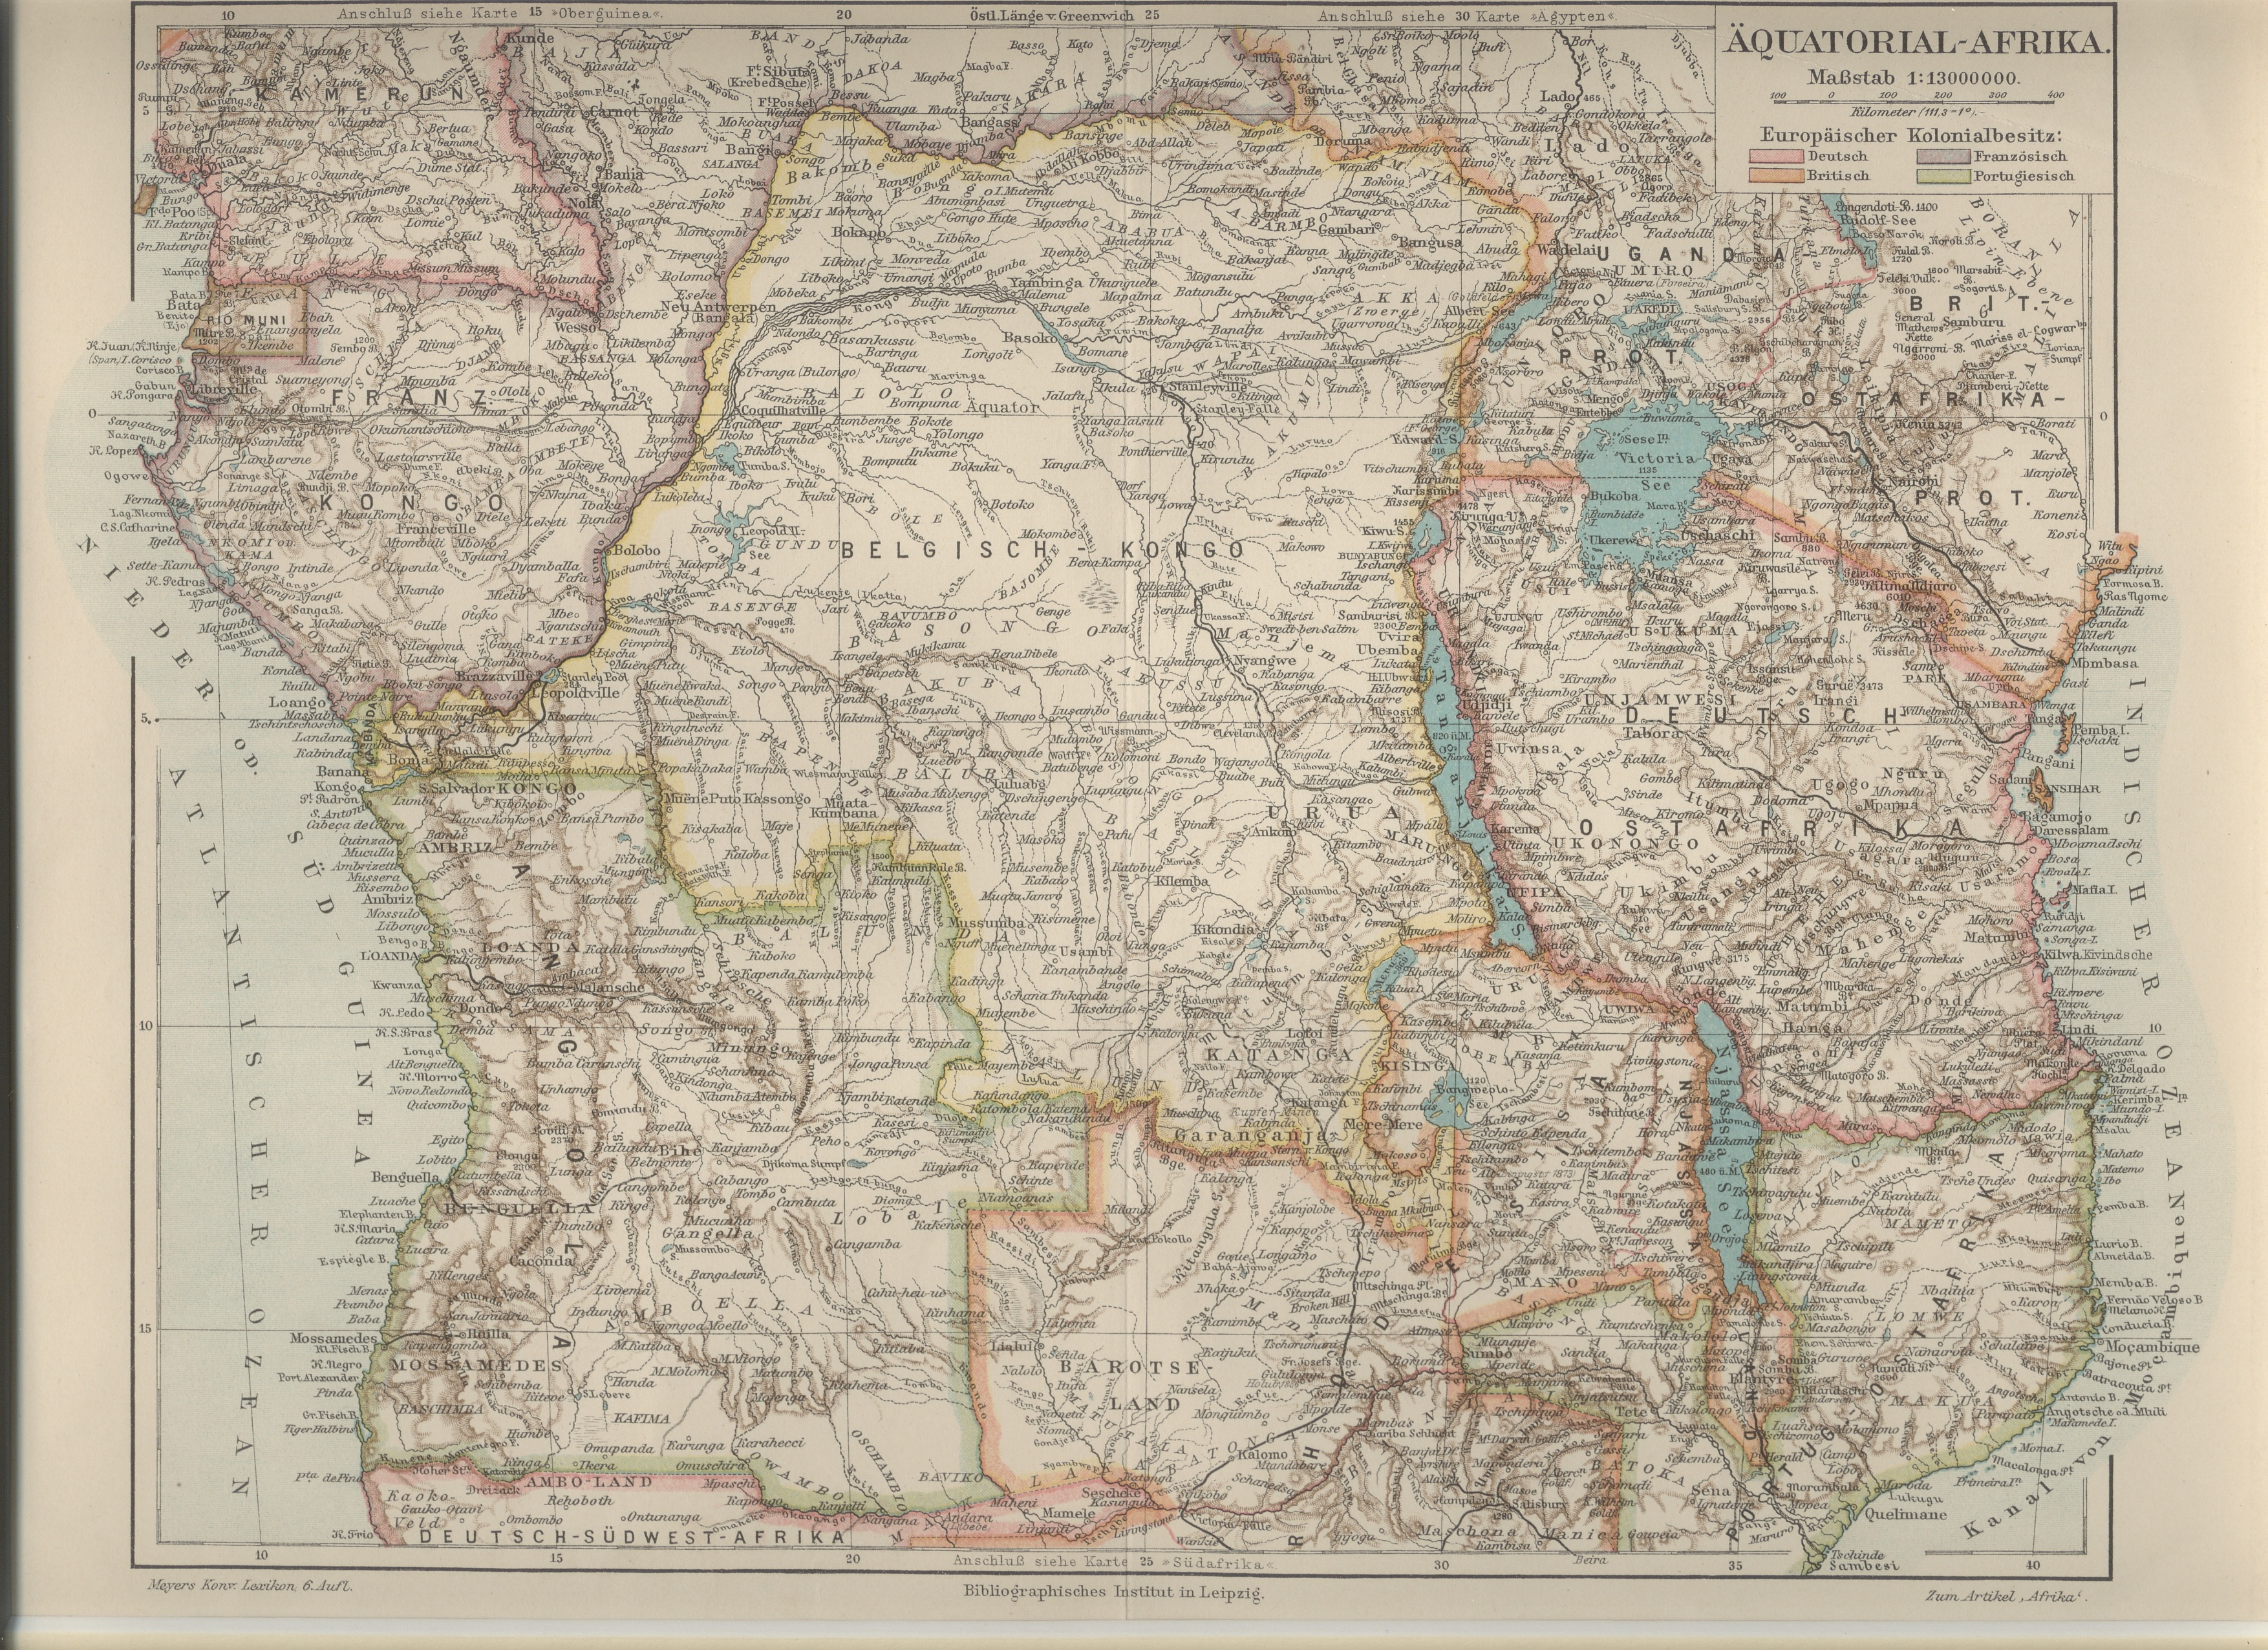 Map of Belgian Congo published in 1912.